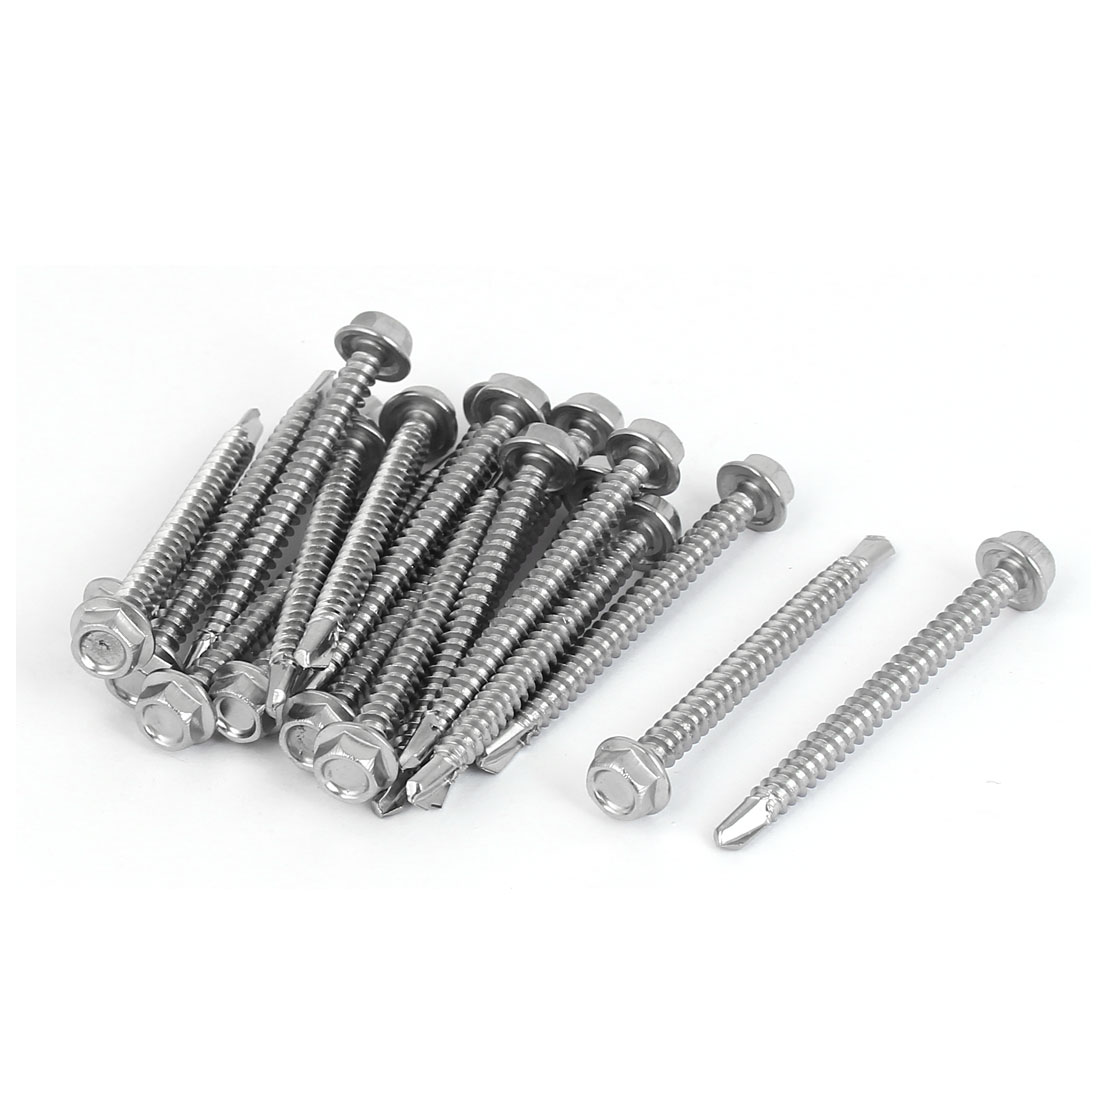 M4.2 x 45mm Male Thread Hex Washer Head Self Drilling Screws Bolts 20 Pcs